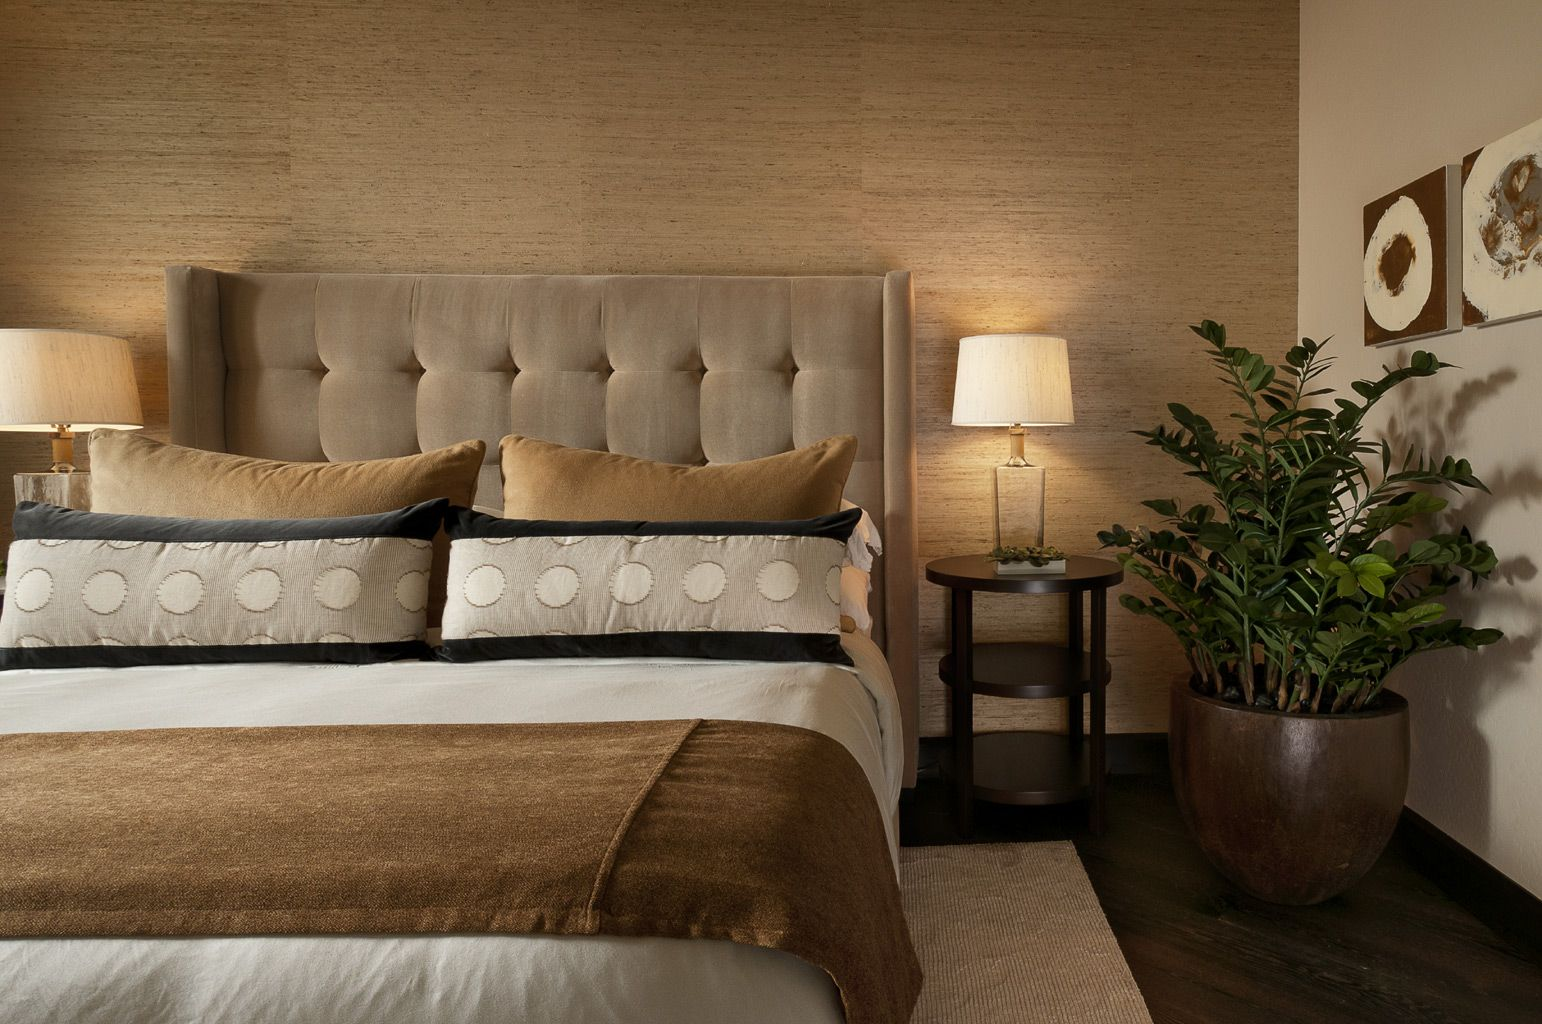 Awesome Luxury Interior Design | Ownby Design | Contemporary Scottsdale Design |  Http://www